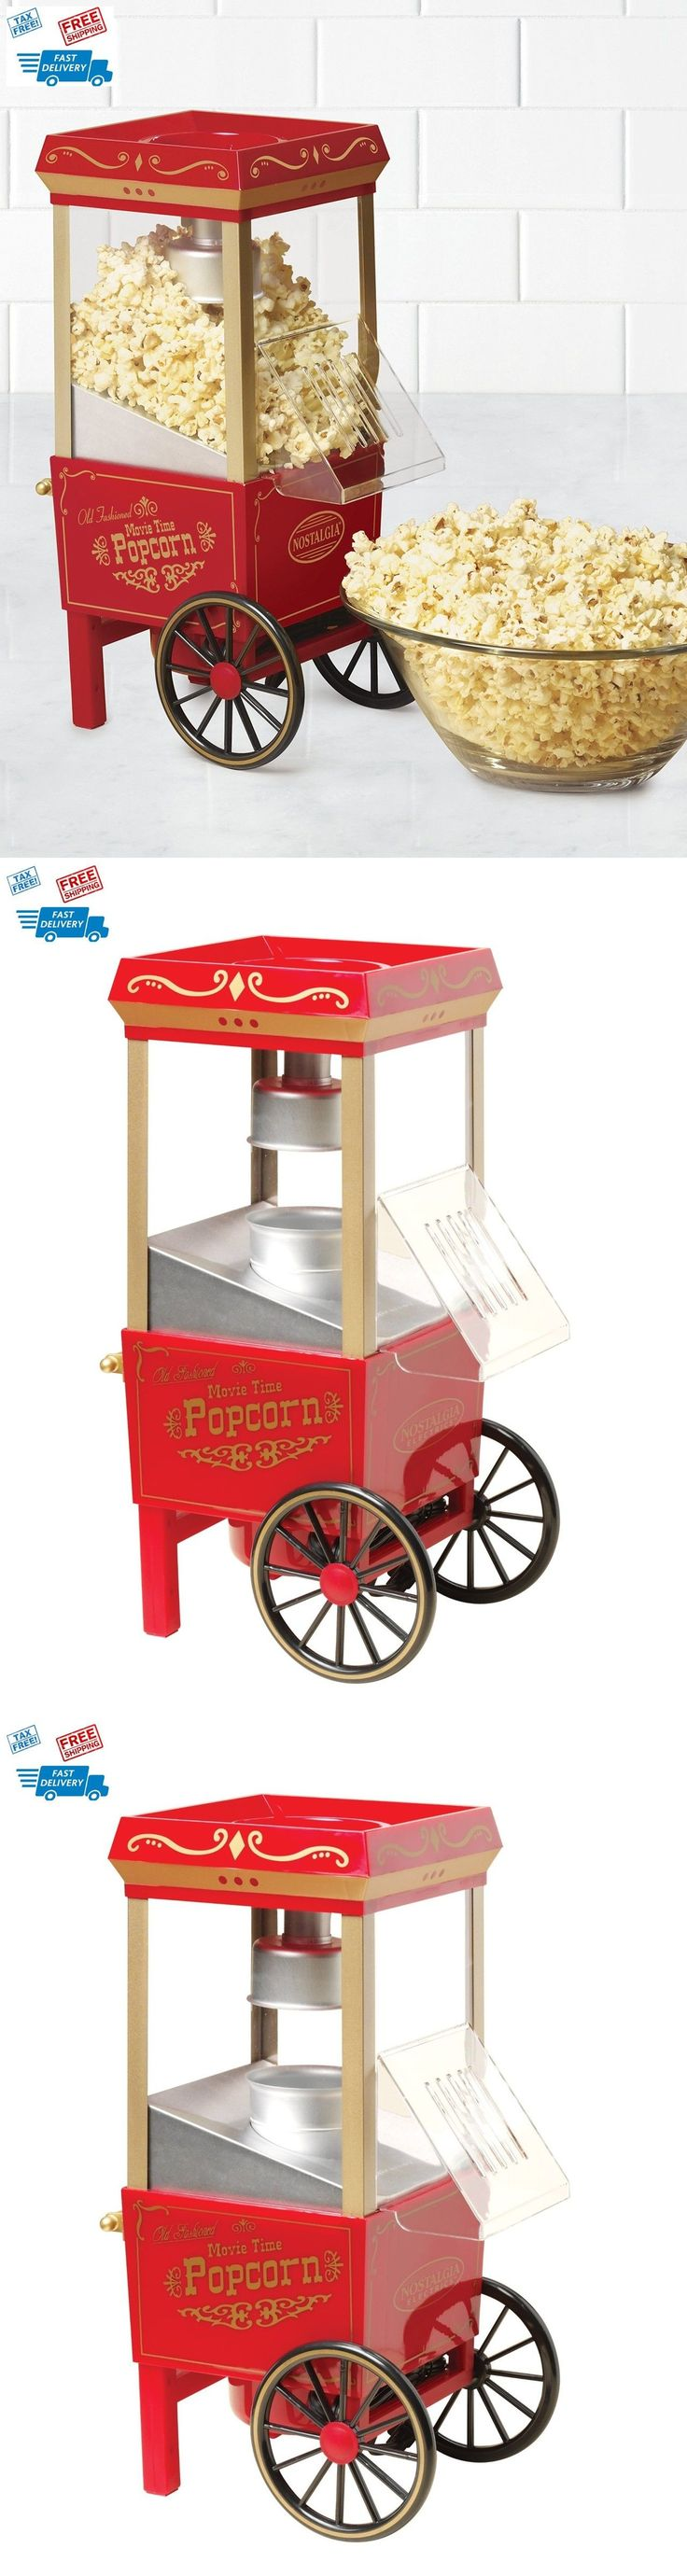 Popcorn Poppers 66752: Electric Popcorn Old Fashioned Corn Popper Kettle Machine Maker Movie Home Party -> BUY IT NOW ONLY: $77.02 on eBay!